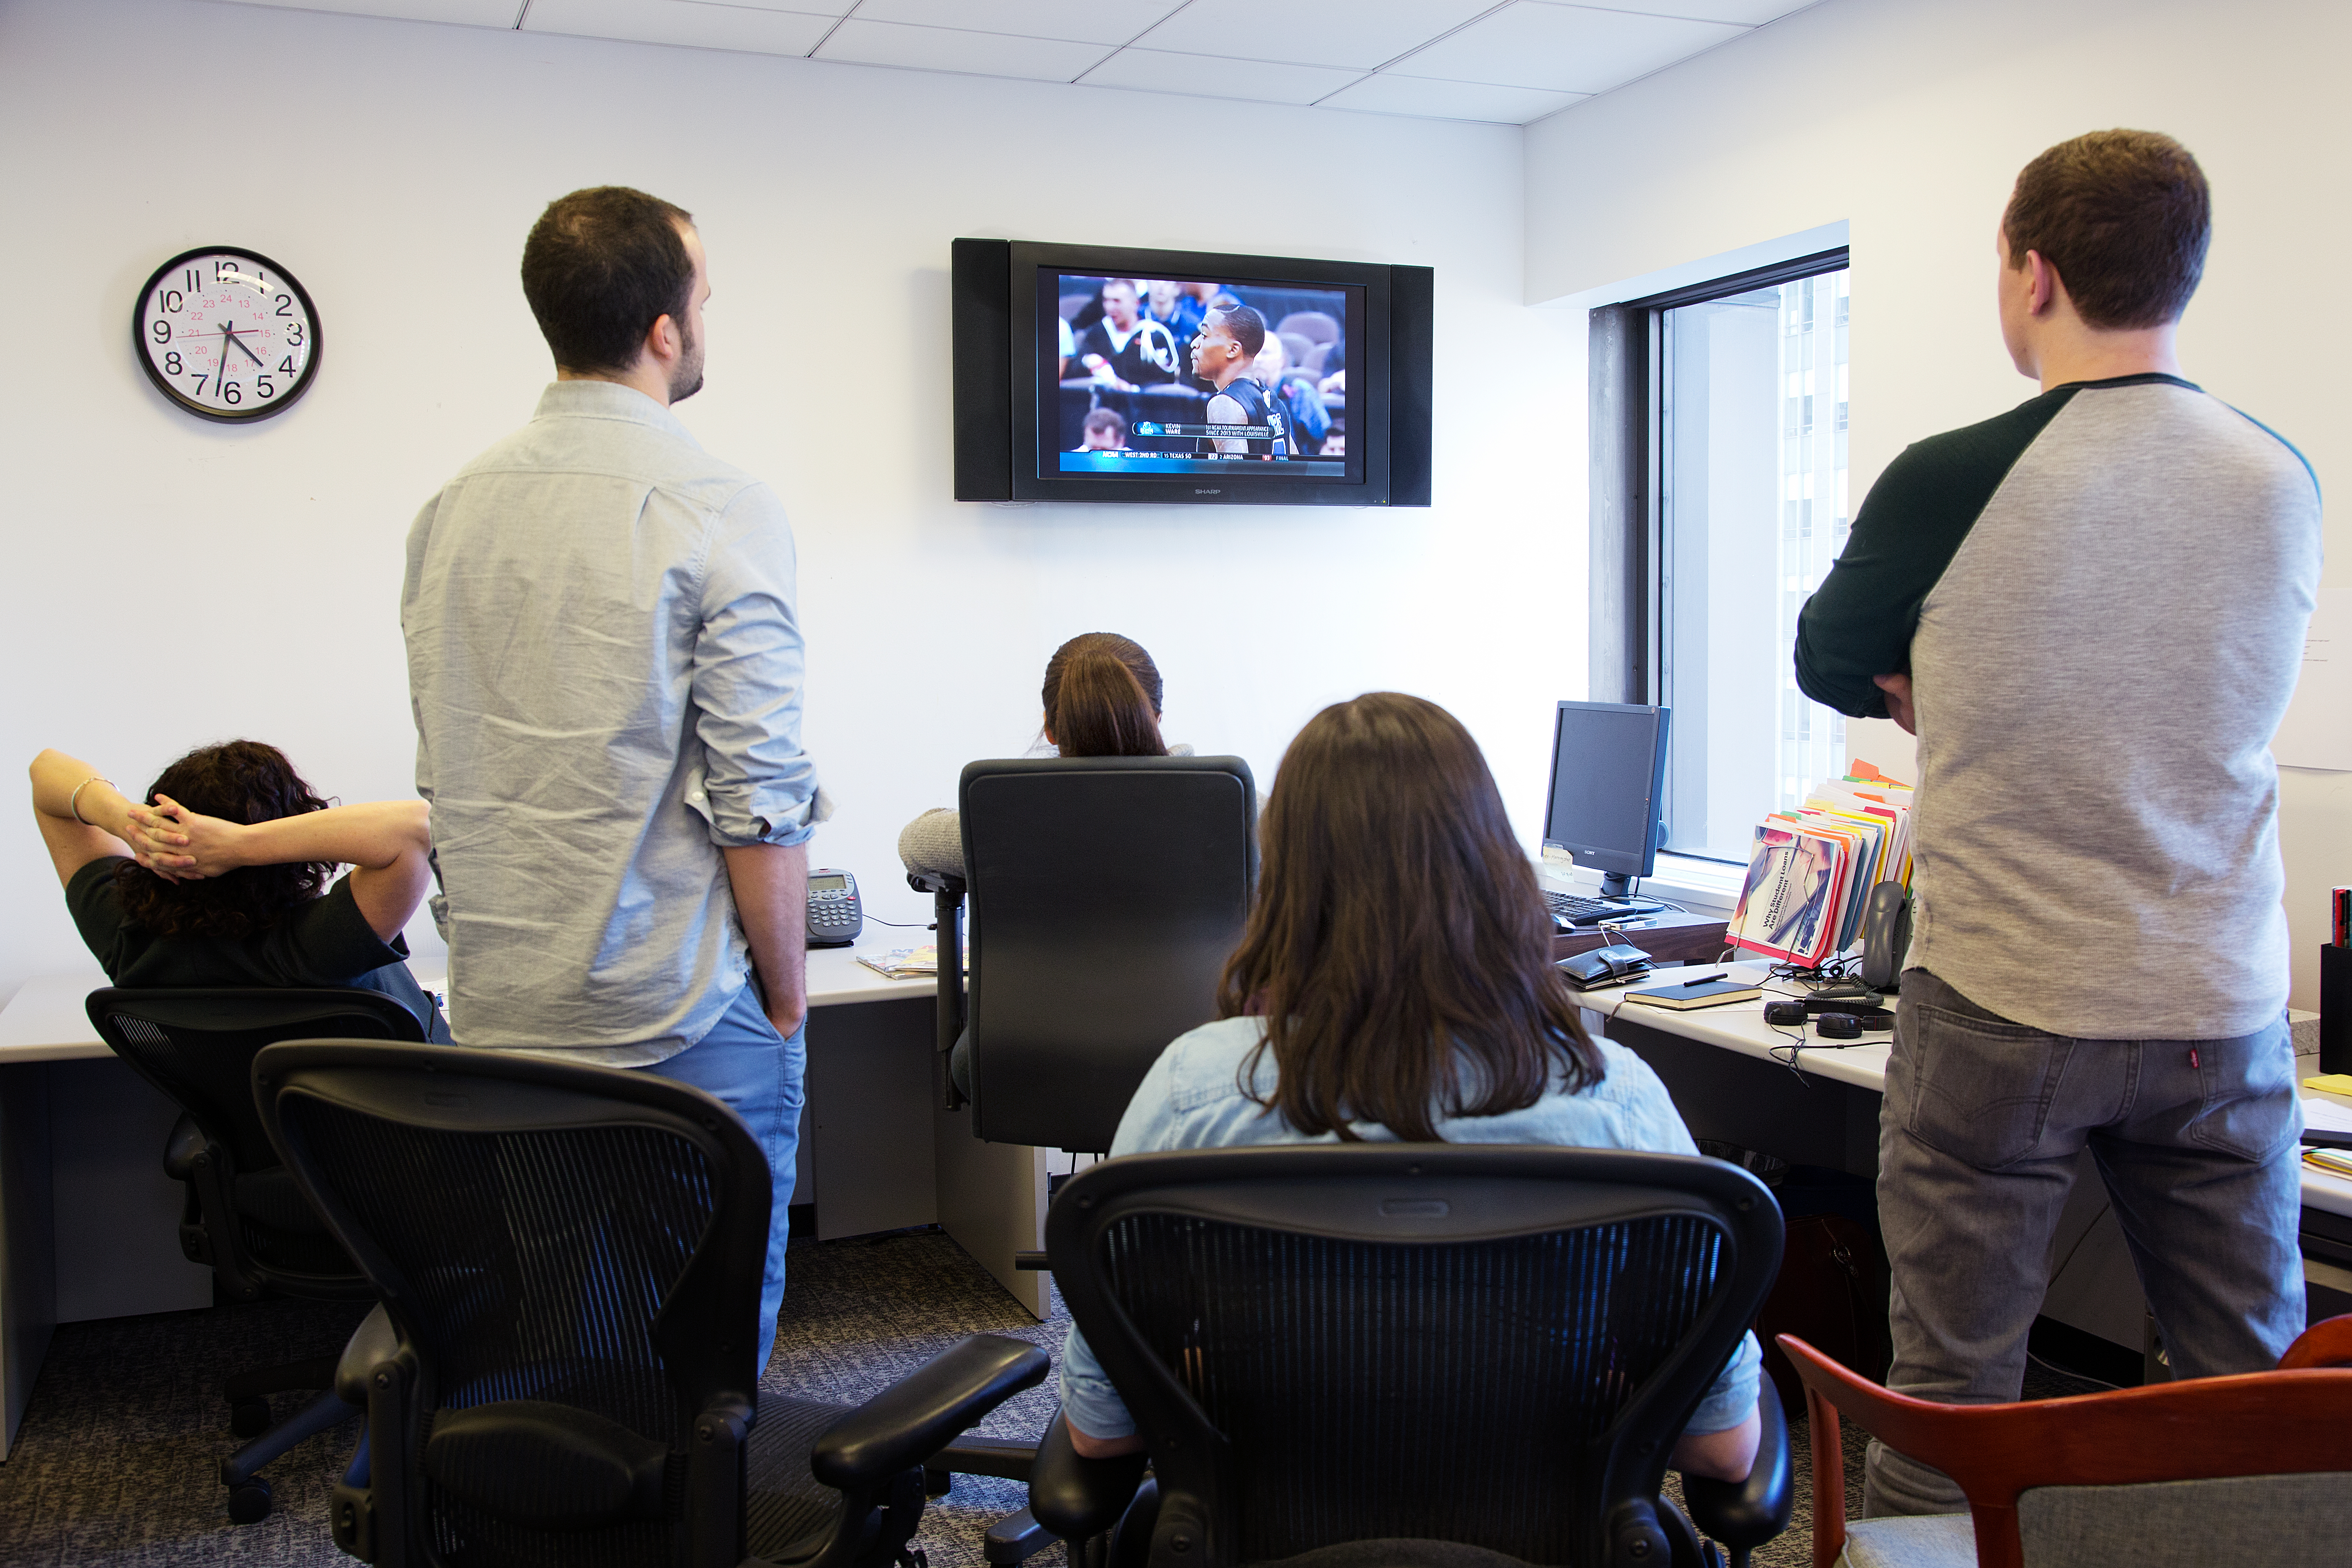 Office workers watching March Madness on television